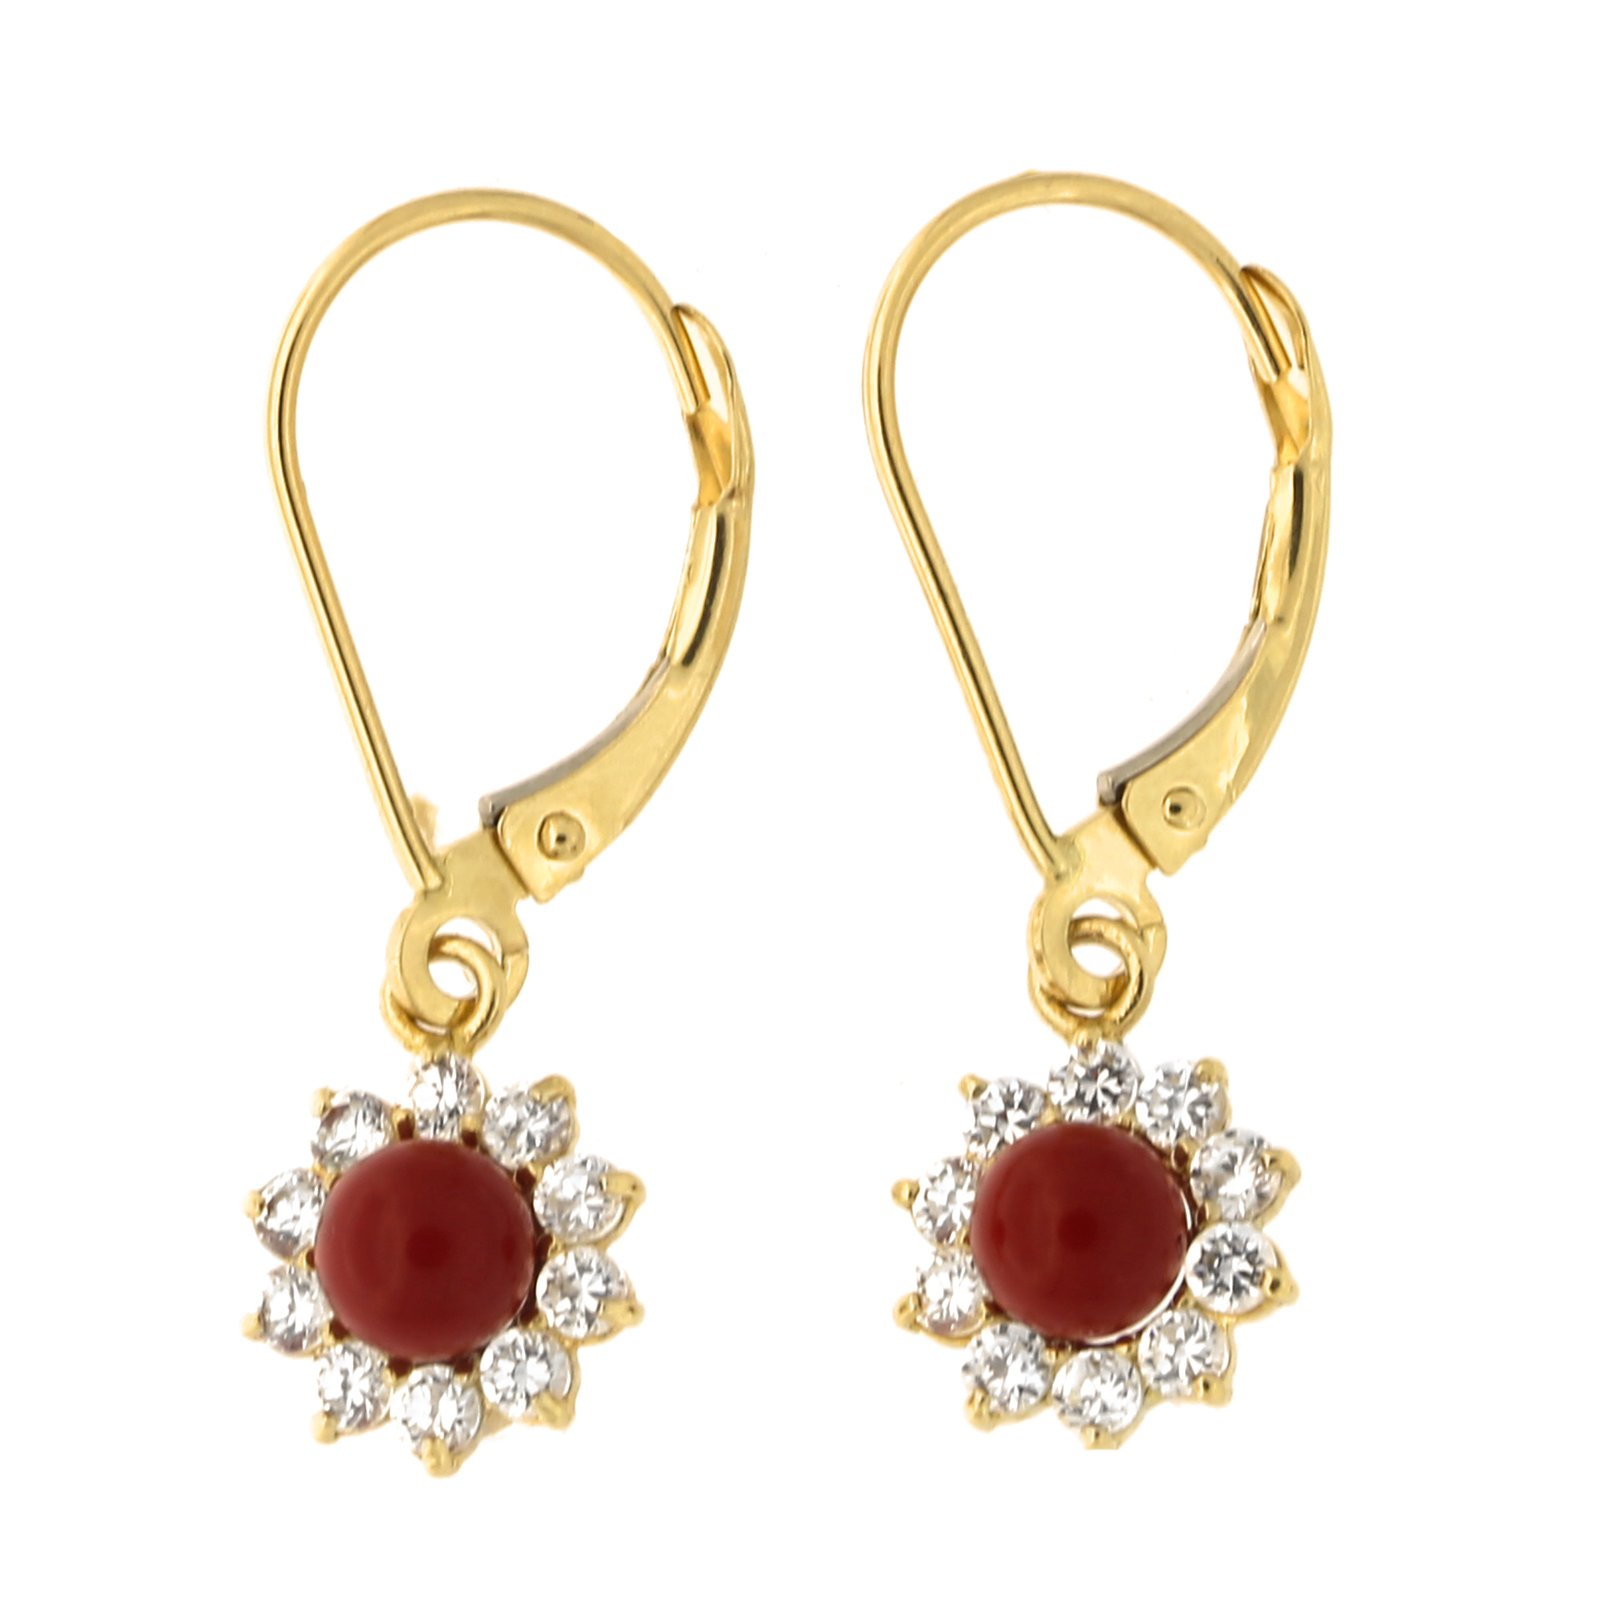 14k Yellow Gold Simulated Dark Red Coral Cubic Zirconia Halo Flower Dangle Leverback Earrings